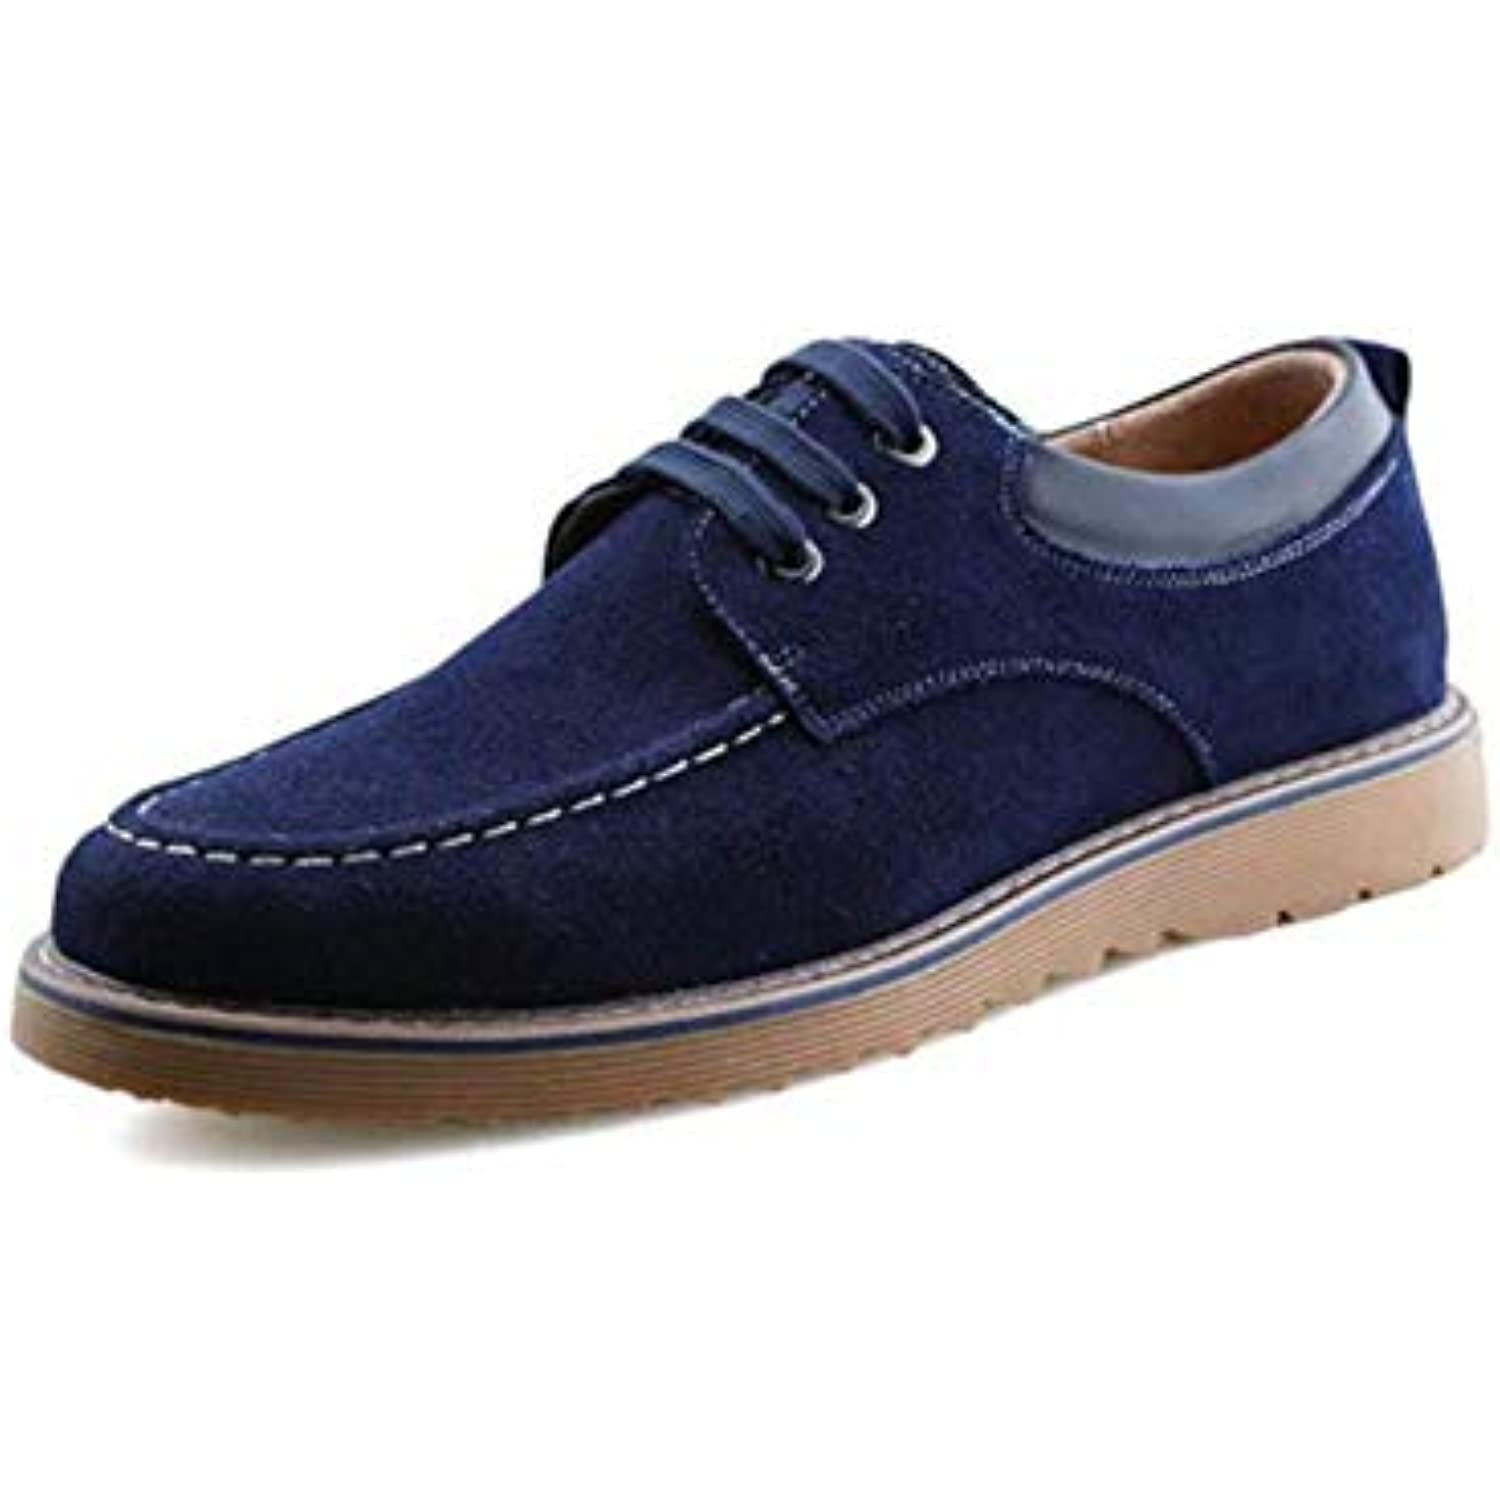 FH Big Shoes Décontractées   England Chaussures Décontractées Shoes Chaussures D'outillage - B07HCYD5BC - f8eeed